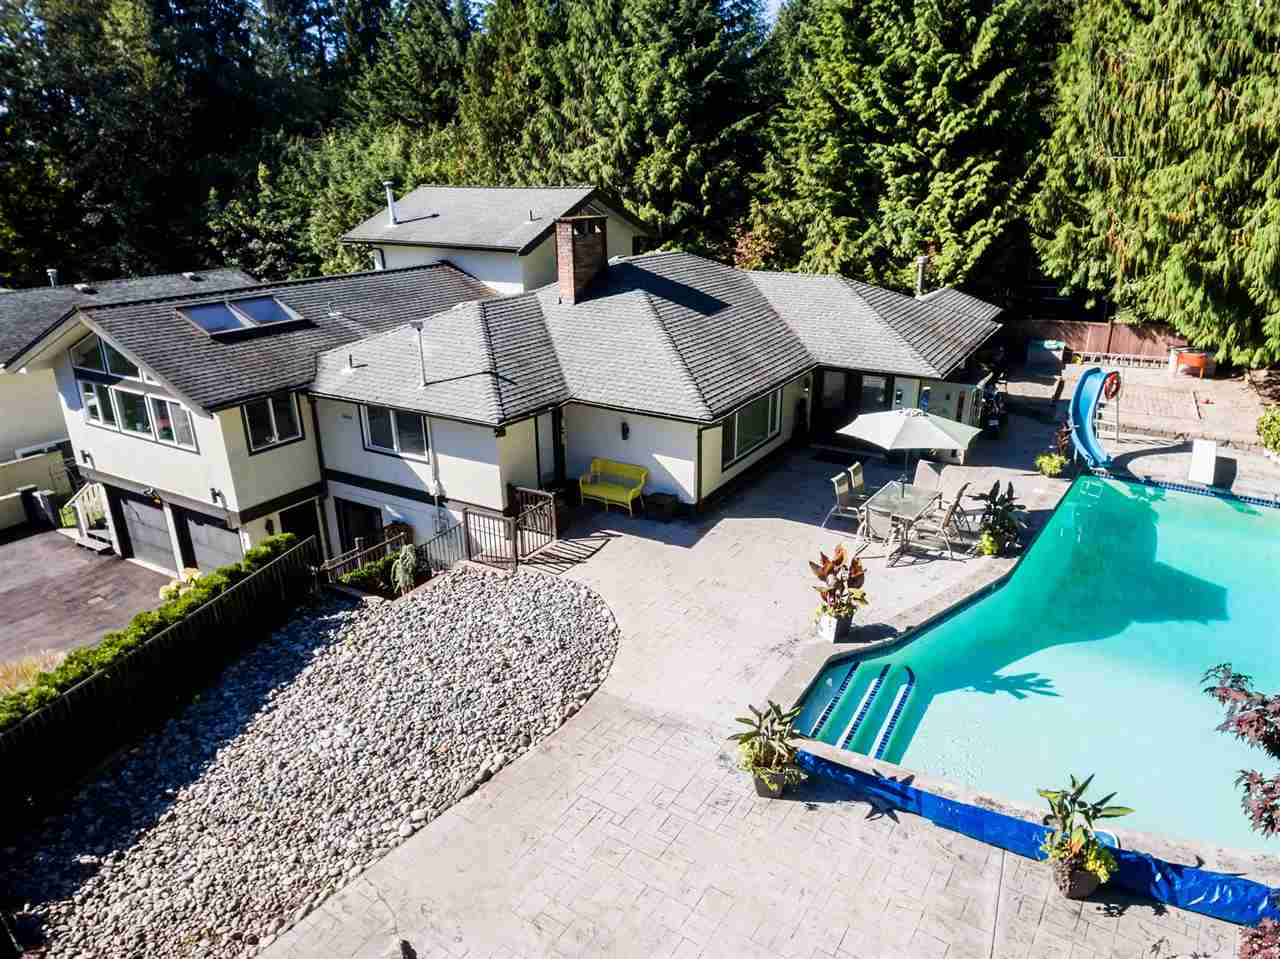 The Perfect Home for Entertaining! Situated in Upper Lynn Valley, this 4,426 sq ft home features 3 bdrms (2 Master Bdrm Suites plus a loft style 3rd bdrm) & 3 full baths up. The lower level has a fully registered Suite w/a large newly renovated Kitchen, large Living Rm w/FP, a Dining Rm, 2 Bdrms & a 4 pc Bath. The lot is 13, 328 sq ft & includes a gorgeous concrete pool surrounded by a stamped concrete patio (features a direct gas bib for a BBQ, a direct gas Fire Pit, & a Pool house (which includes a 3 pc Bath). The Kitchen was designed by a caterer for a caterer featuring dble wall ovens, Jenn Air cook top, wine fridge, trash compactor, garburator, double sink plus a prep sink, lots of granite counter space, heated floors plus lots of windows & well-appointed skylights to take in the mountain views while you cook/entertain. The open plan main floor flows seamlessly from large Living rm to generous Dining rm & finally huge Family rm; the perfect combination for family gatherings/entertaining. A must see!